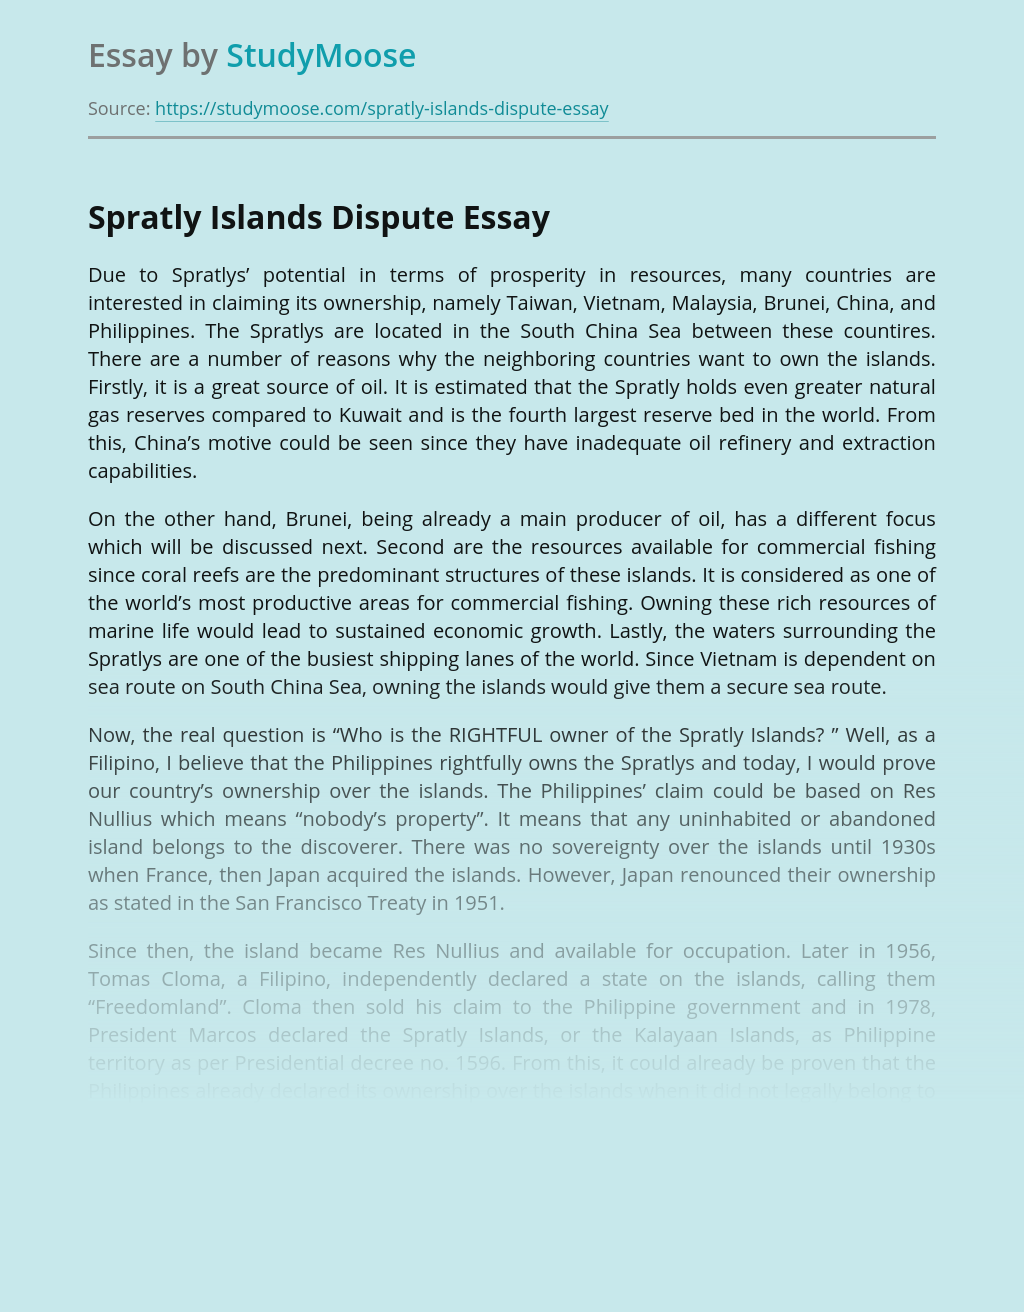 Economy and Other Claims Concerning Spratly Islands Dispute